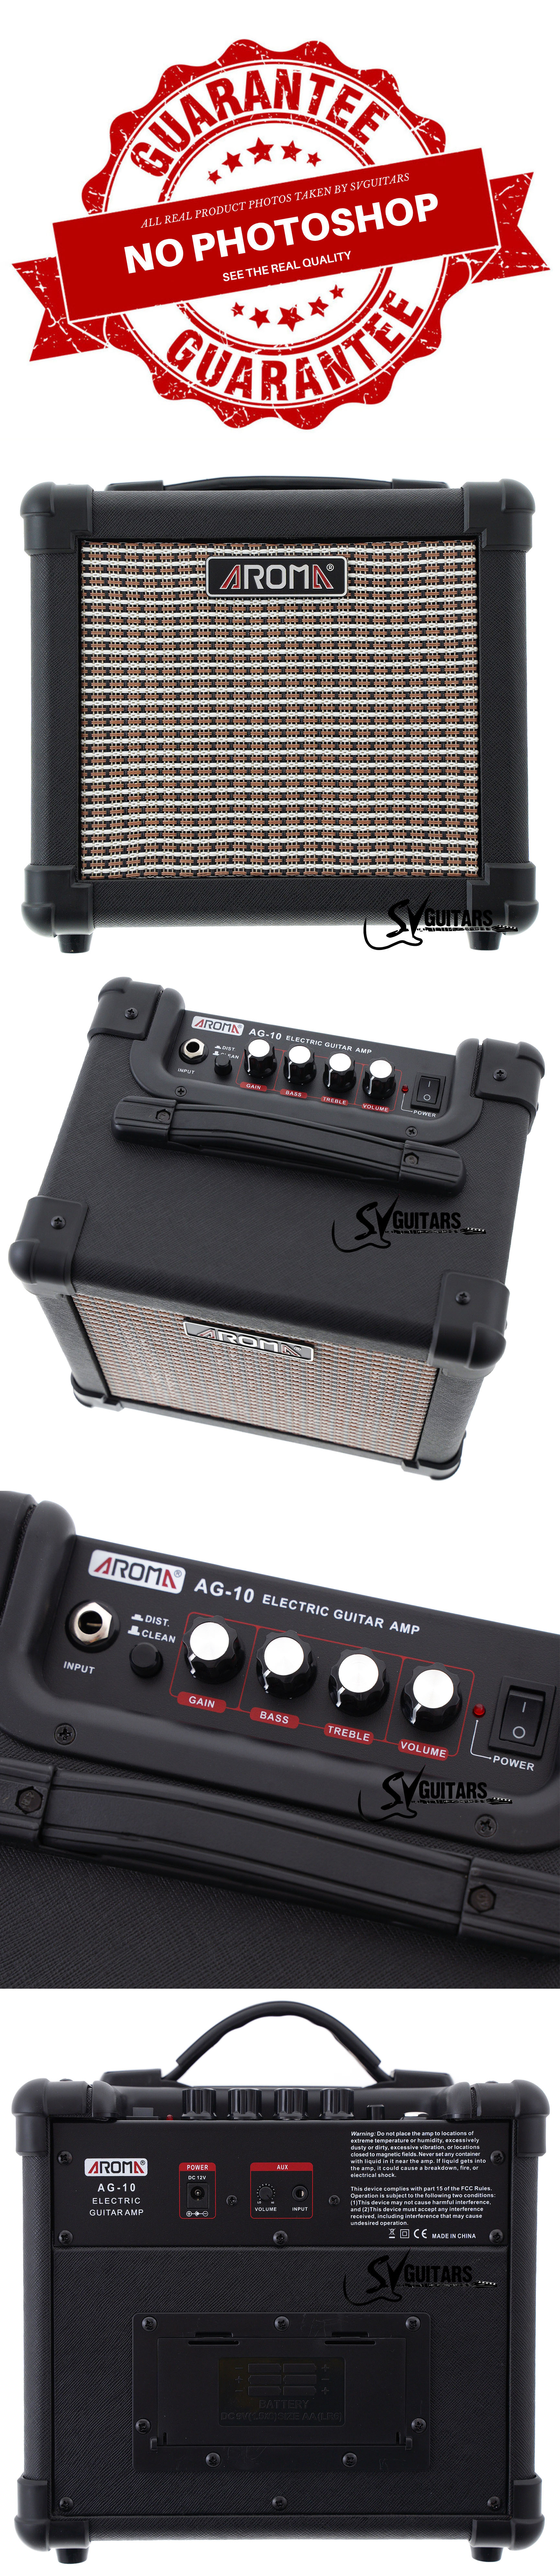 aroma-ag-10-cheap-electric-guitar-amplifier-singapore-content.jpg